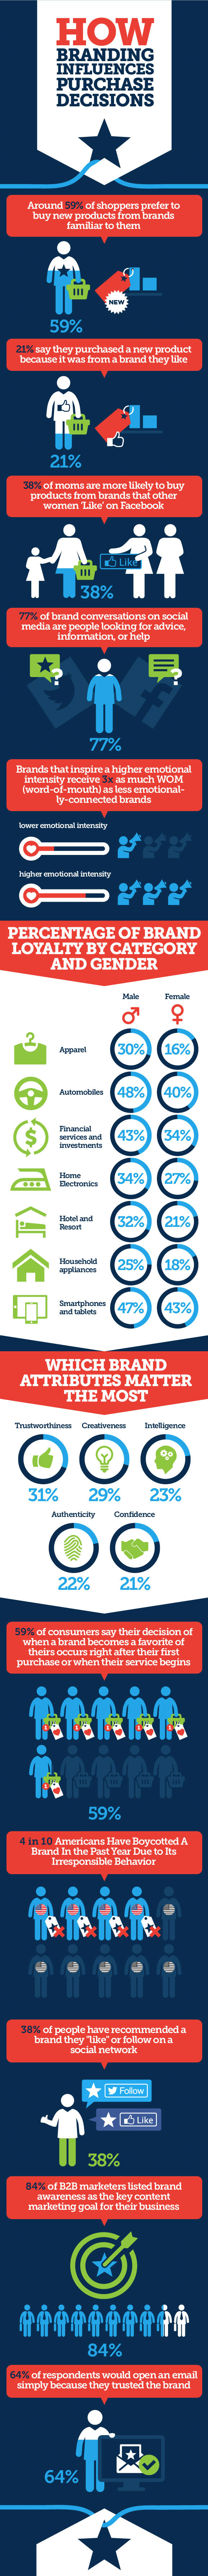 how-brand-influences-purchase-decisions